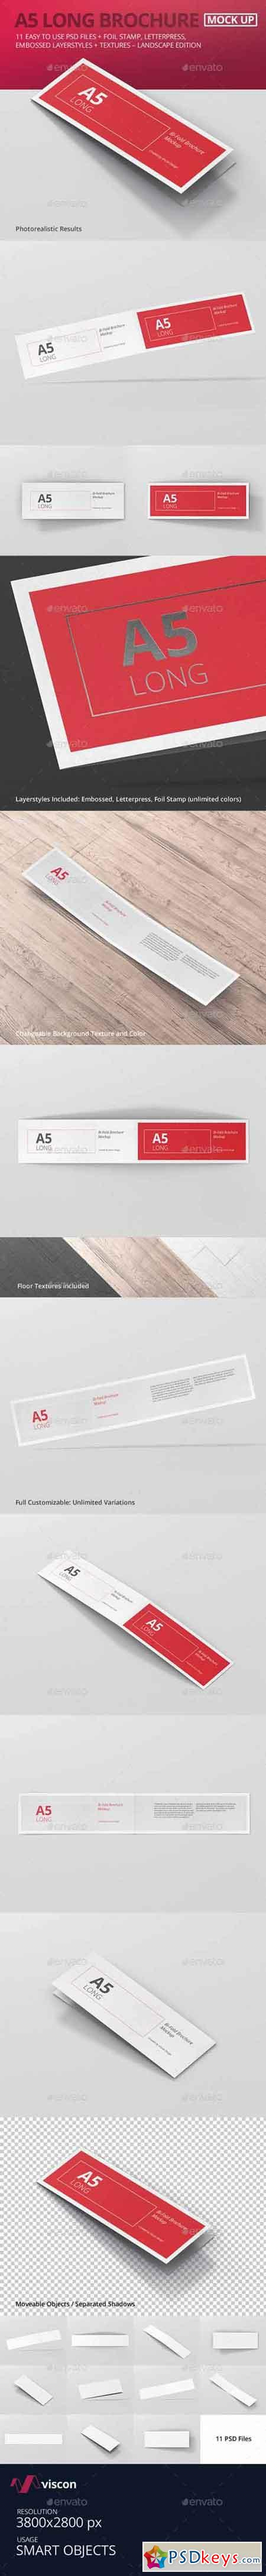 A5 Long Bi-Fold Brochure Mock-Up Landscape 15821784